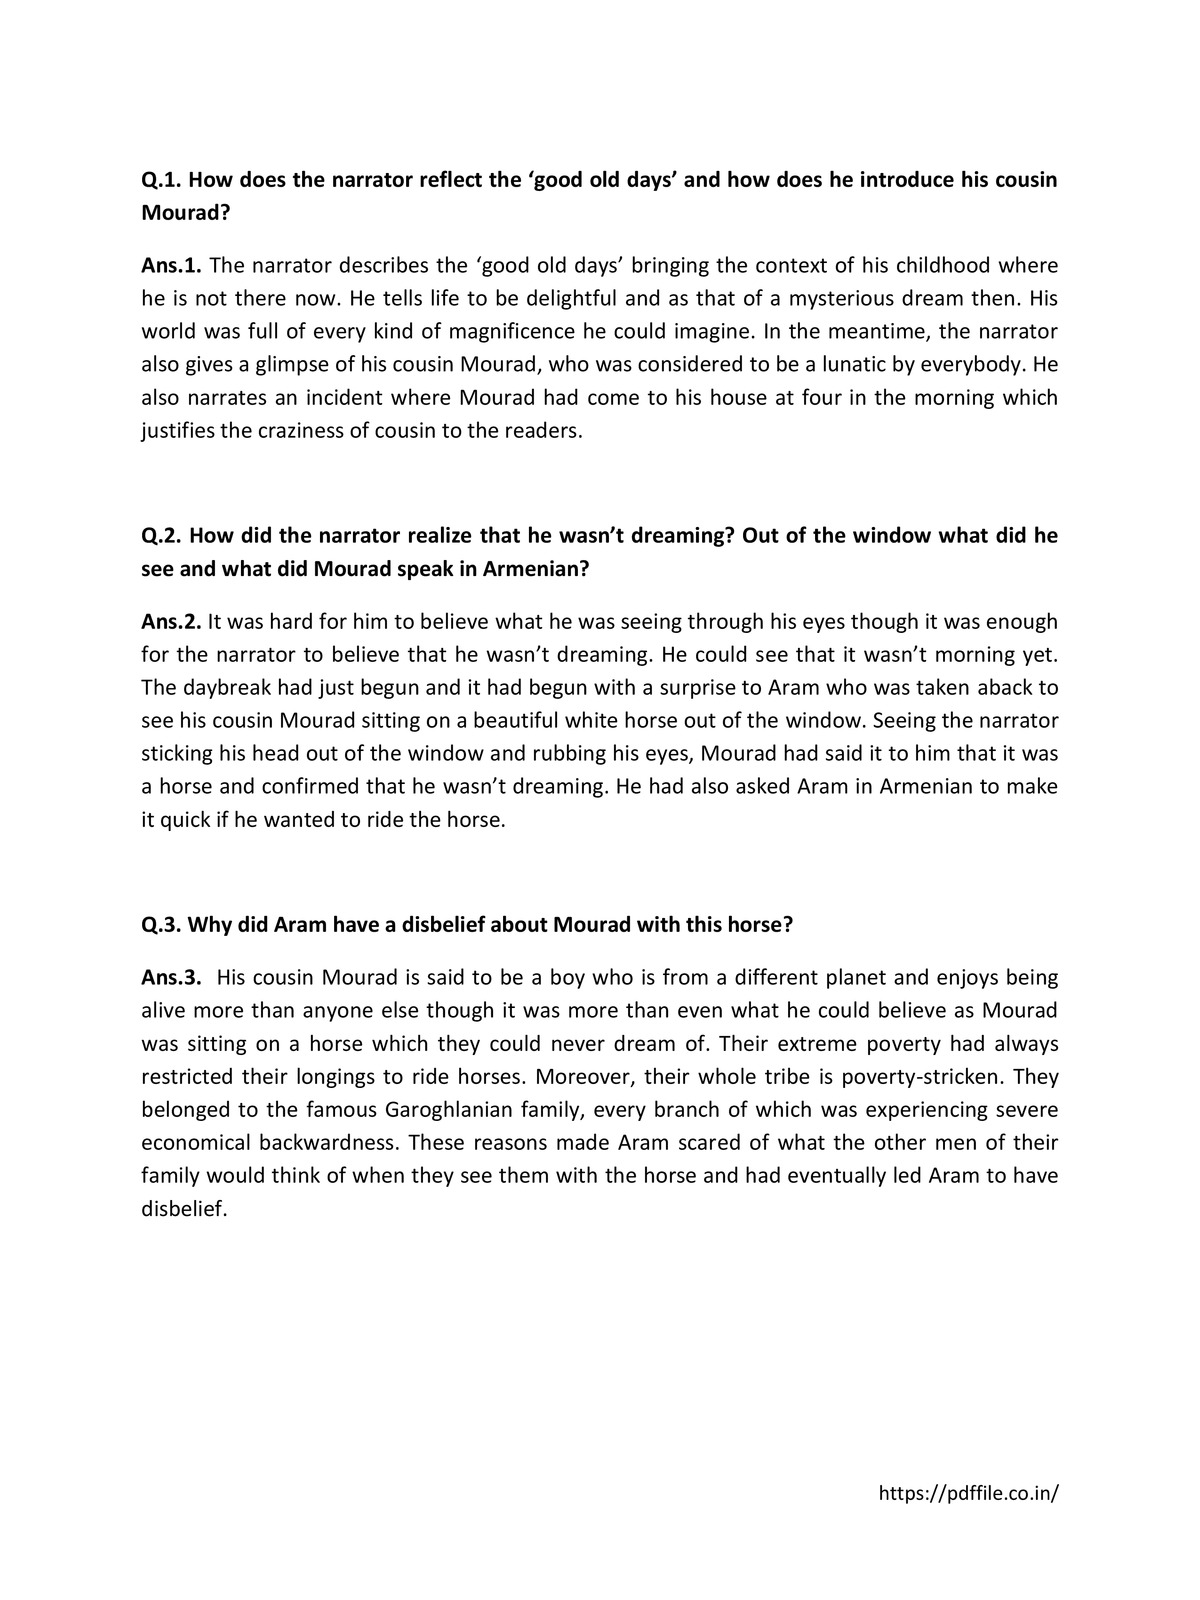 The Summer of the Beautiful White Horse Extra Questions and Answers pdf